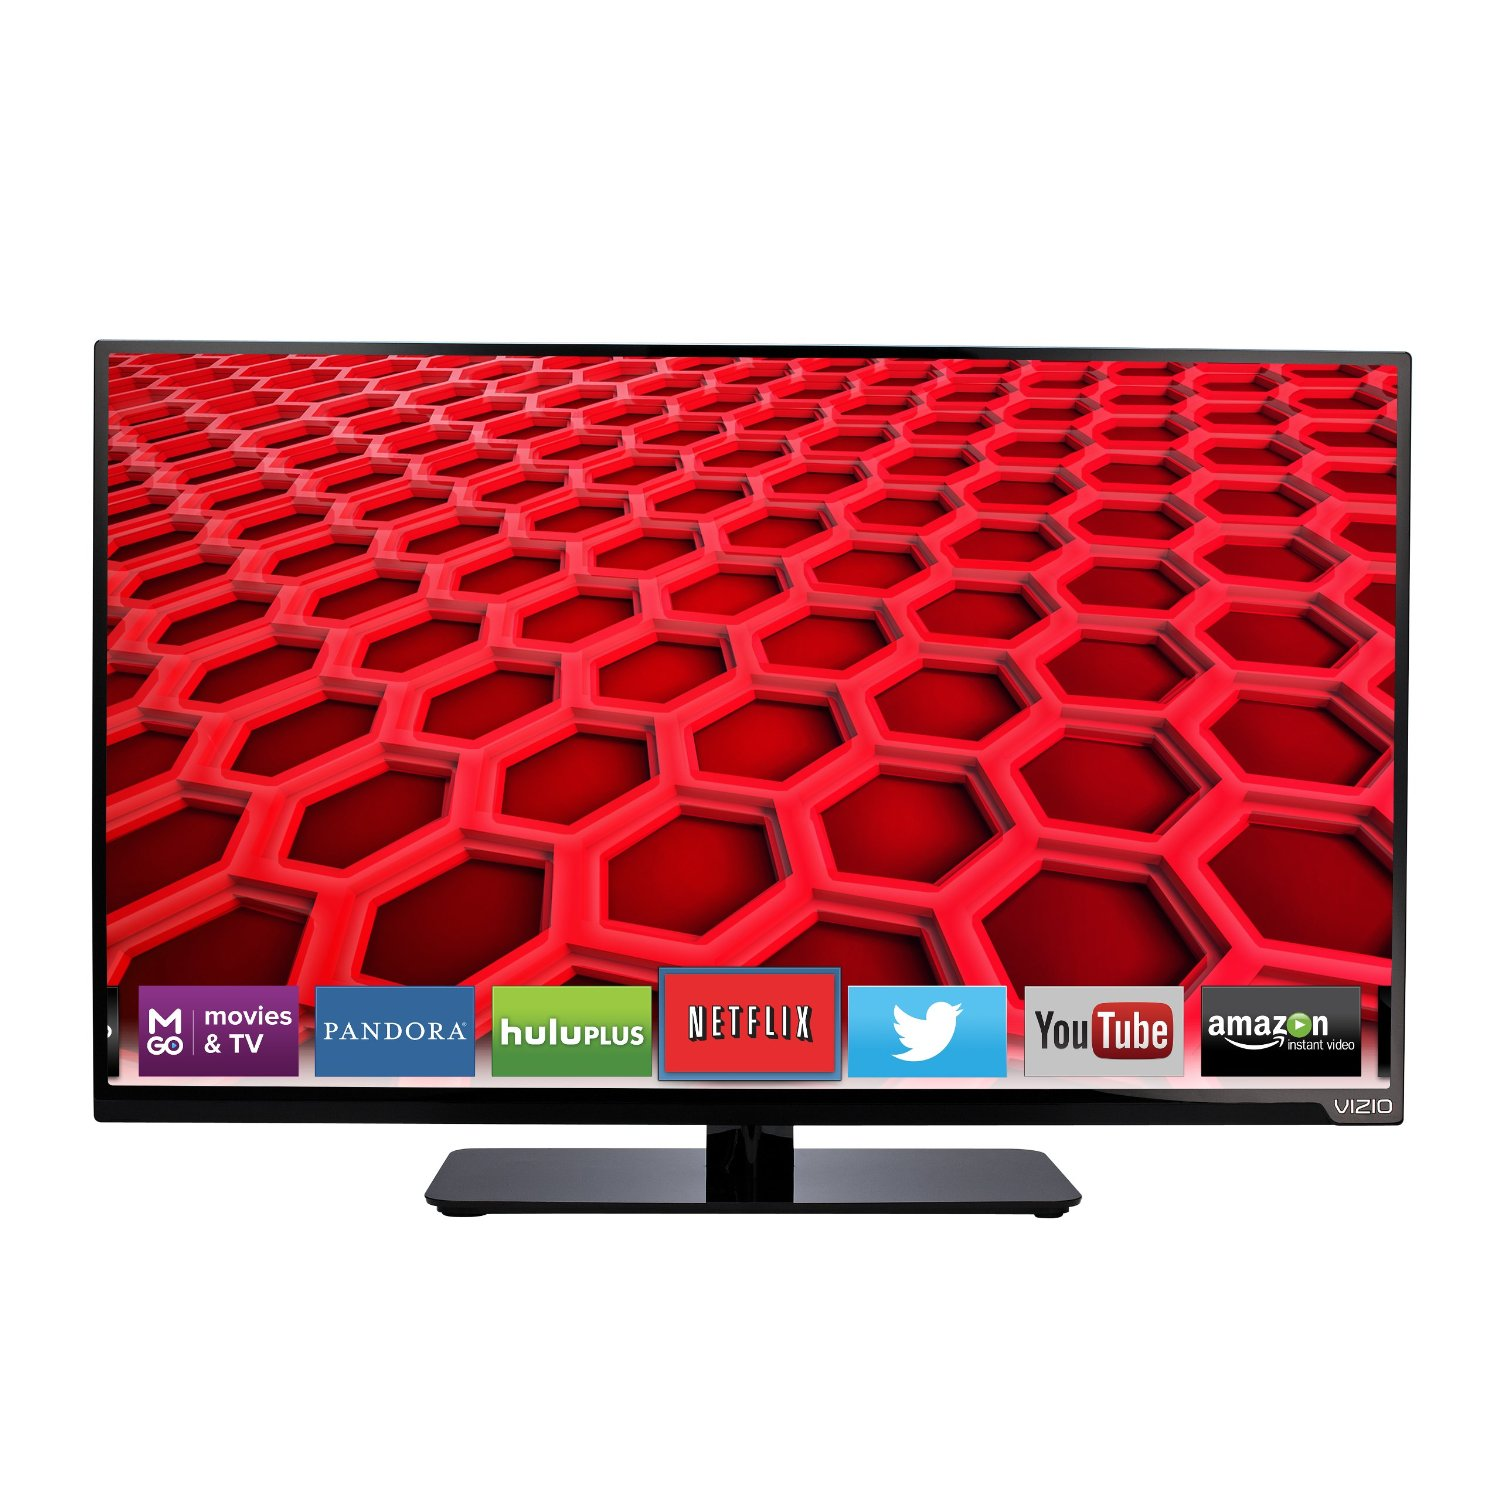 vizio e390i-b0 39-inch 1080p LED tv